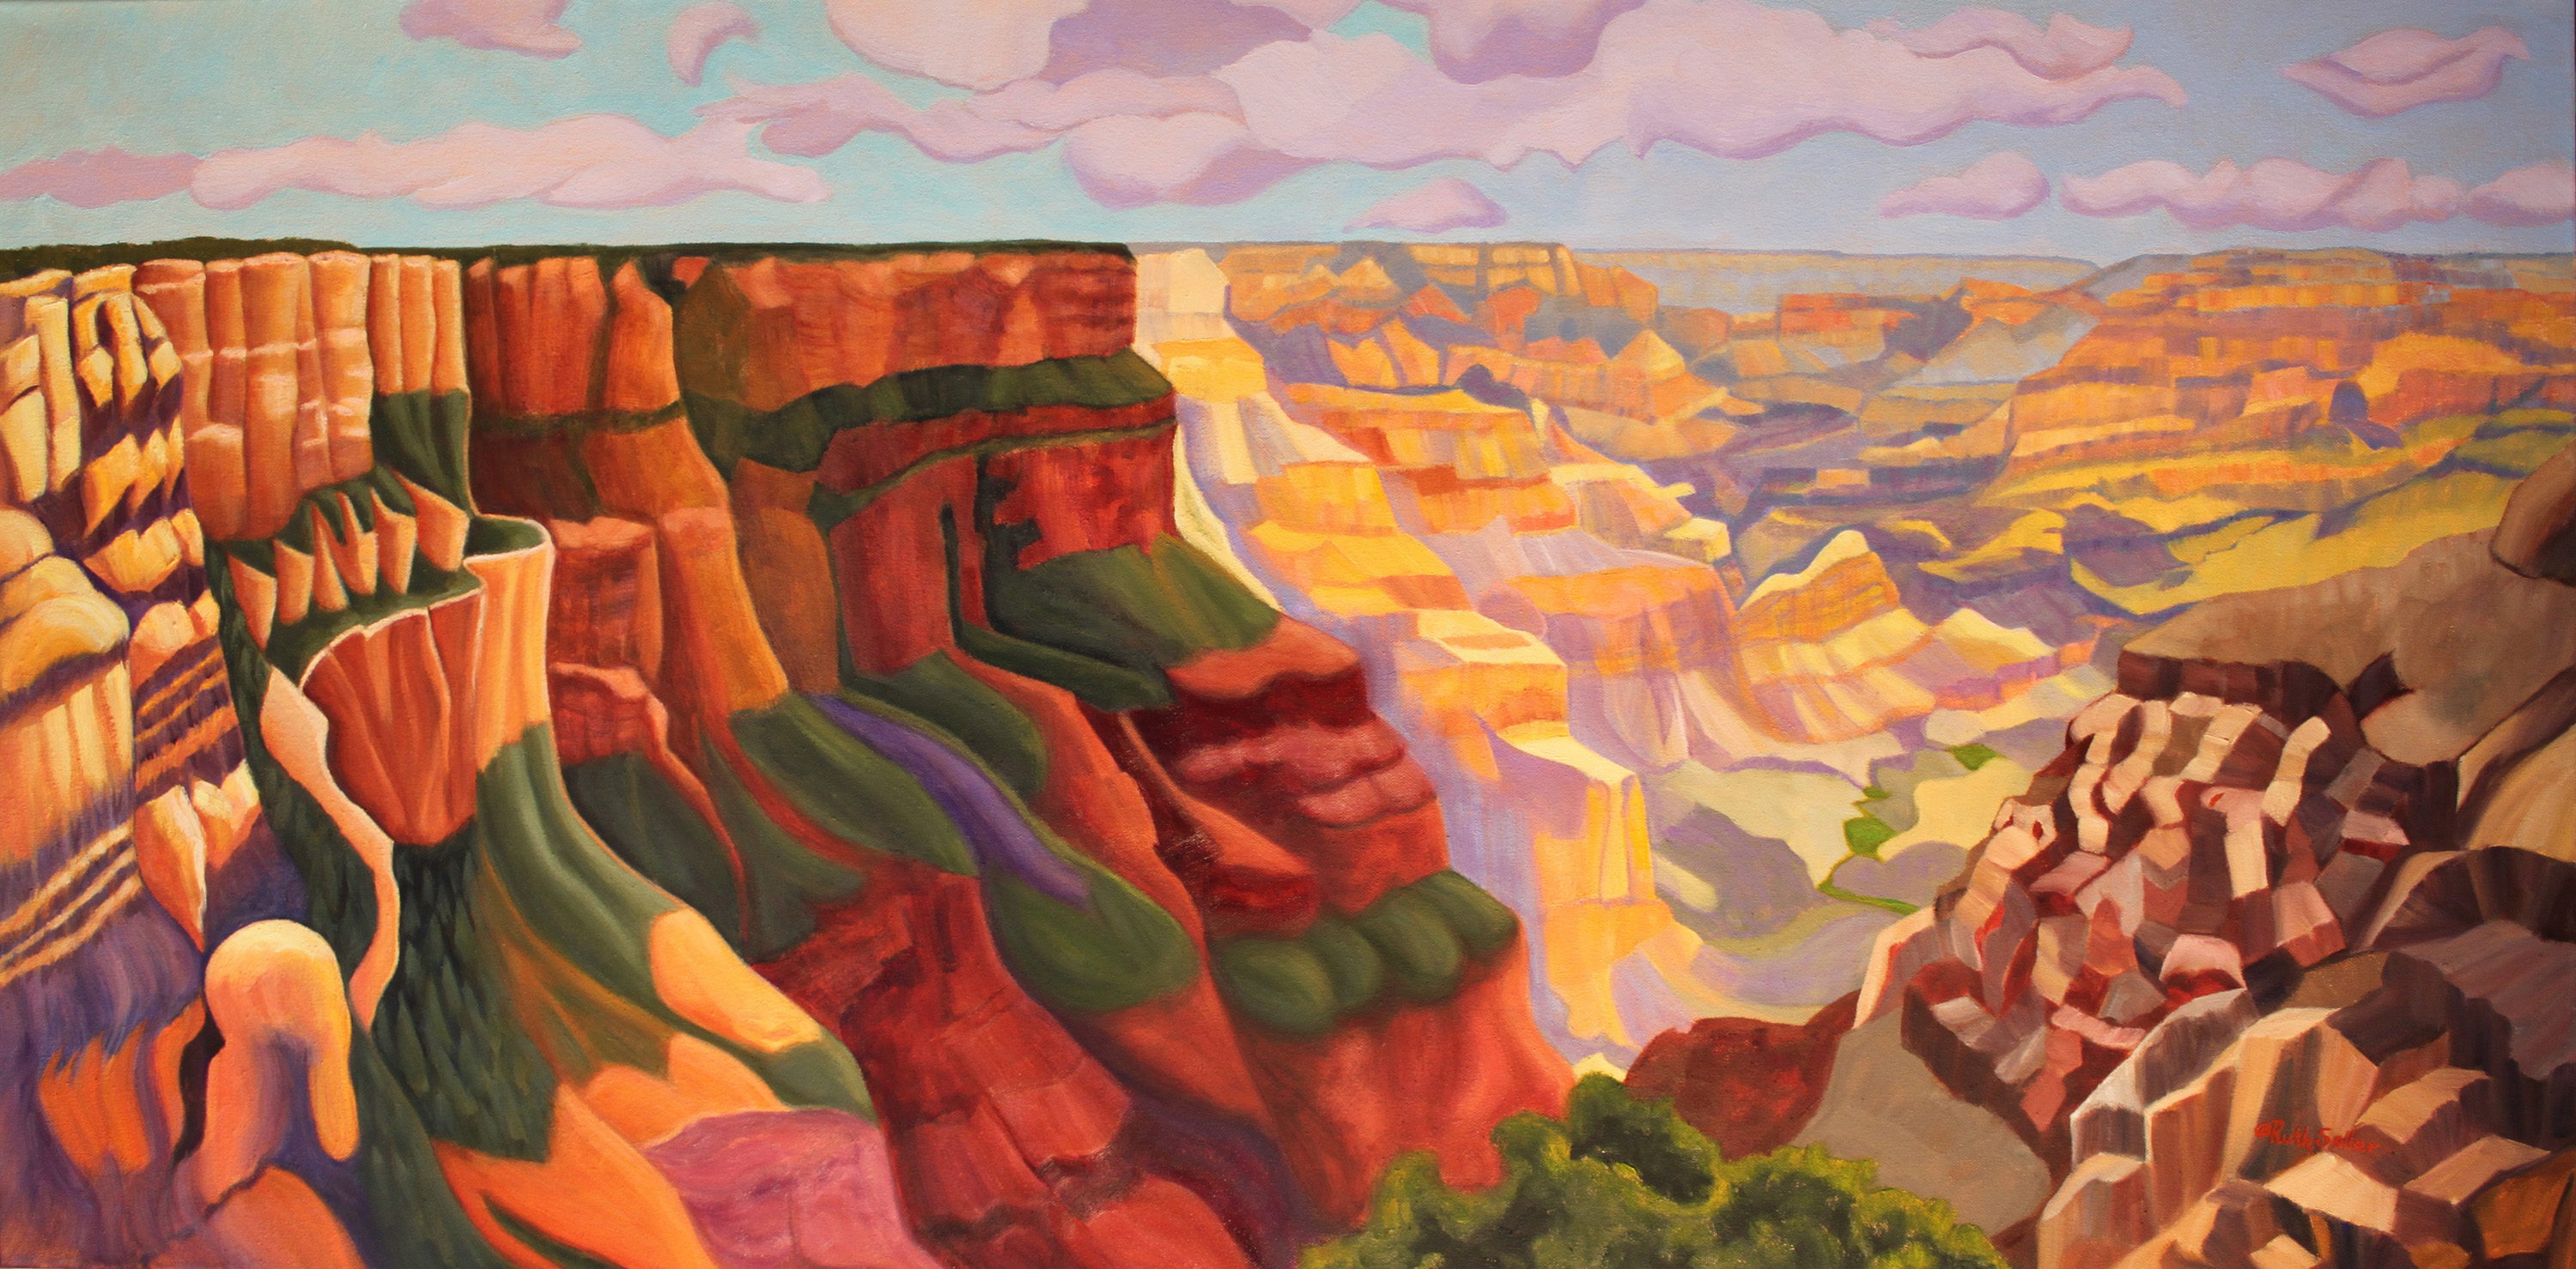 Soller_TheAbyssGrandCanyon_oil_24x48_$22